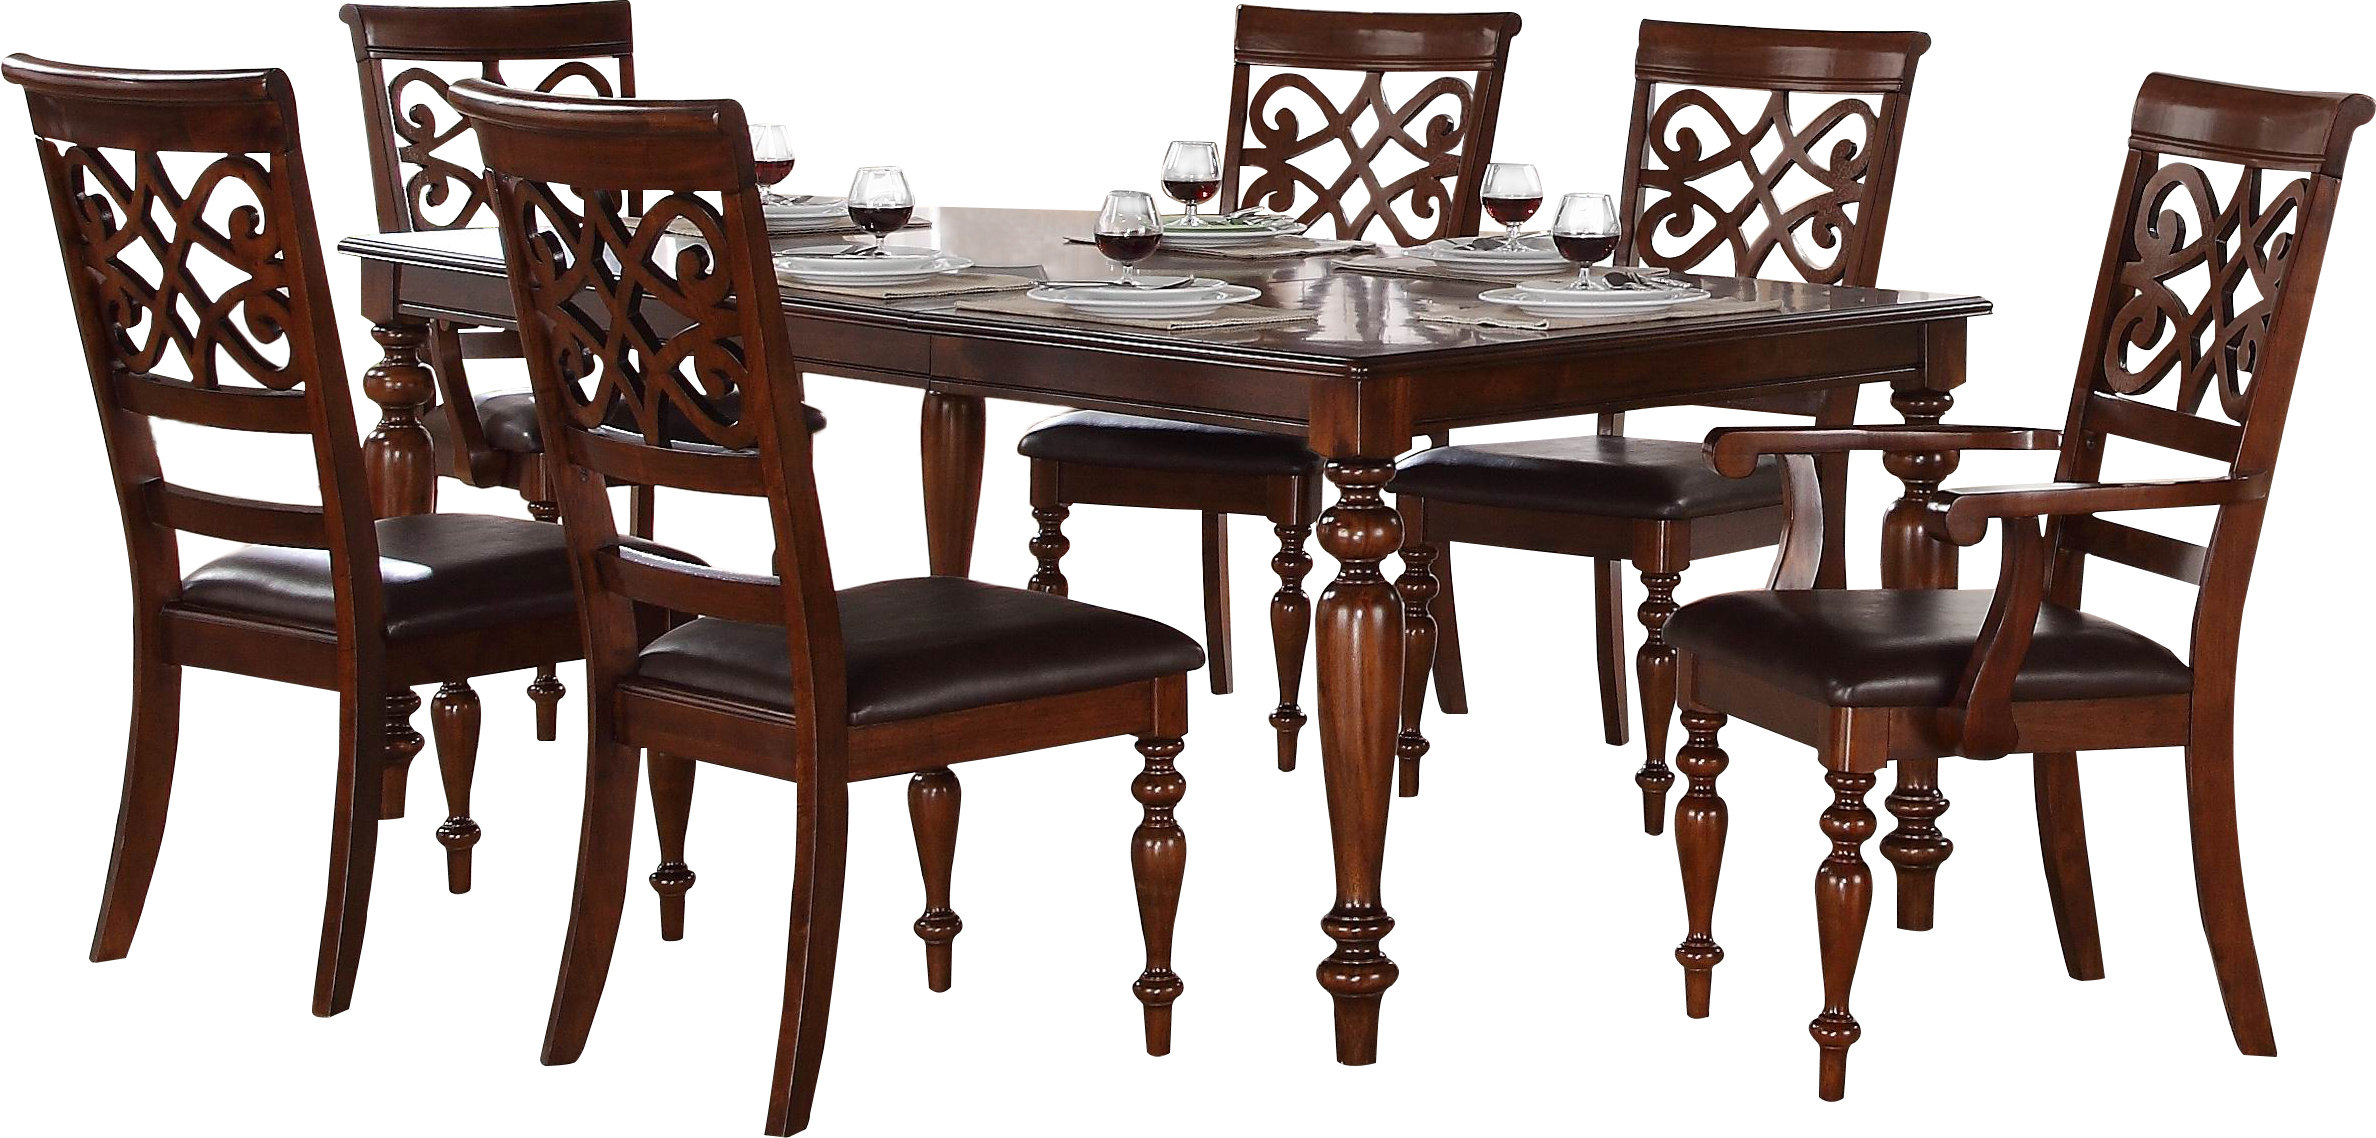 Leith 7 Piece Dining Set With Most Recent Laconia 7 Pieces Solid Wood Dining Sets (Set Of 7) (View 14 of 20)